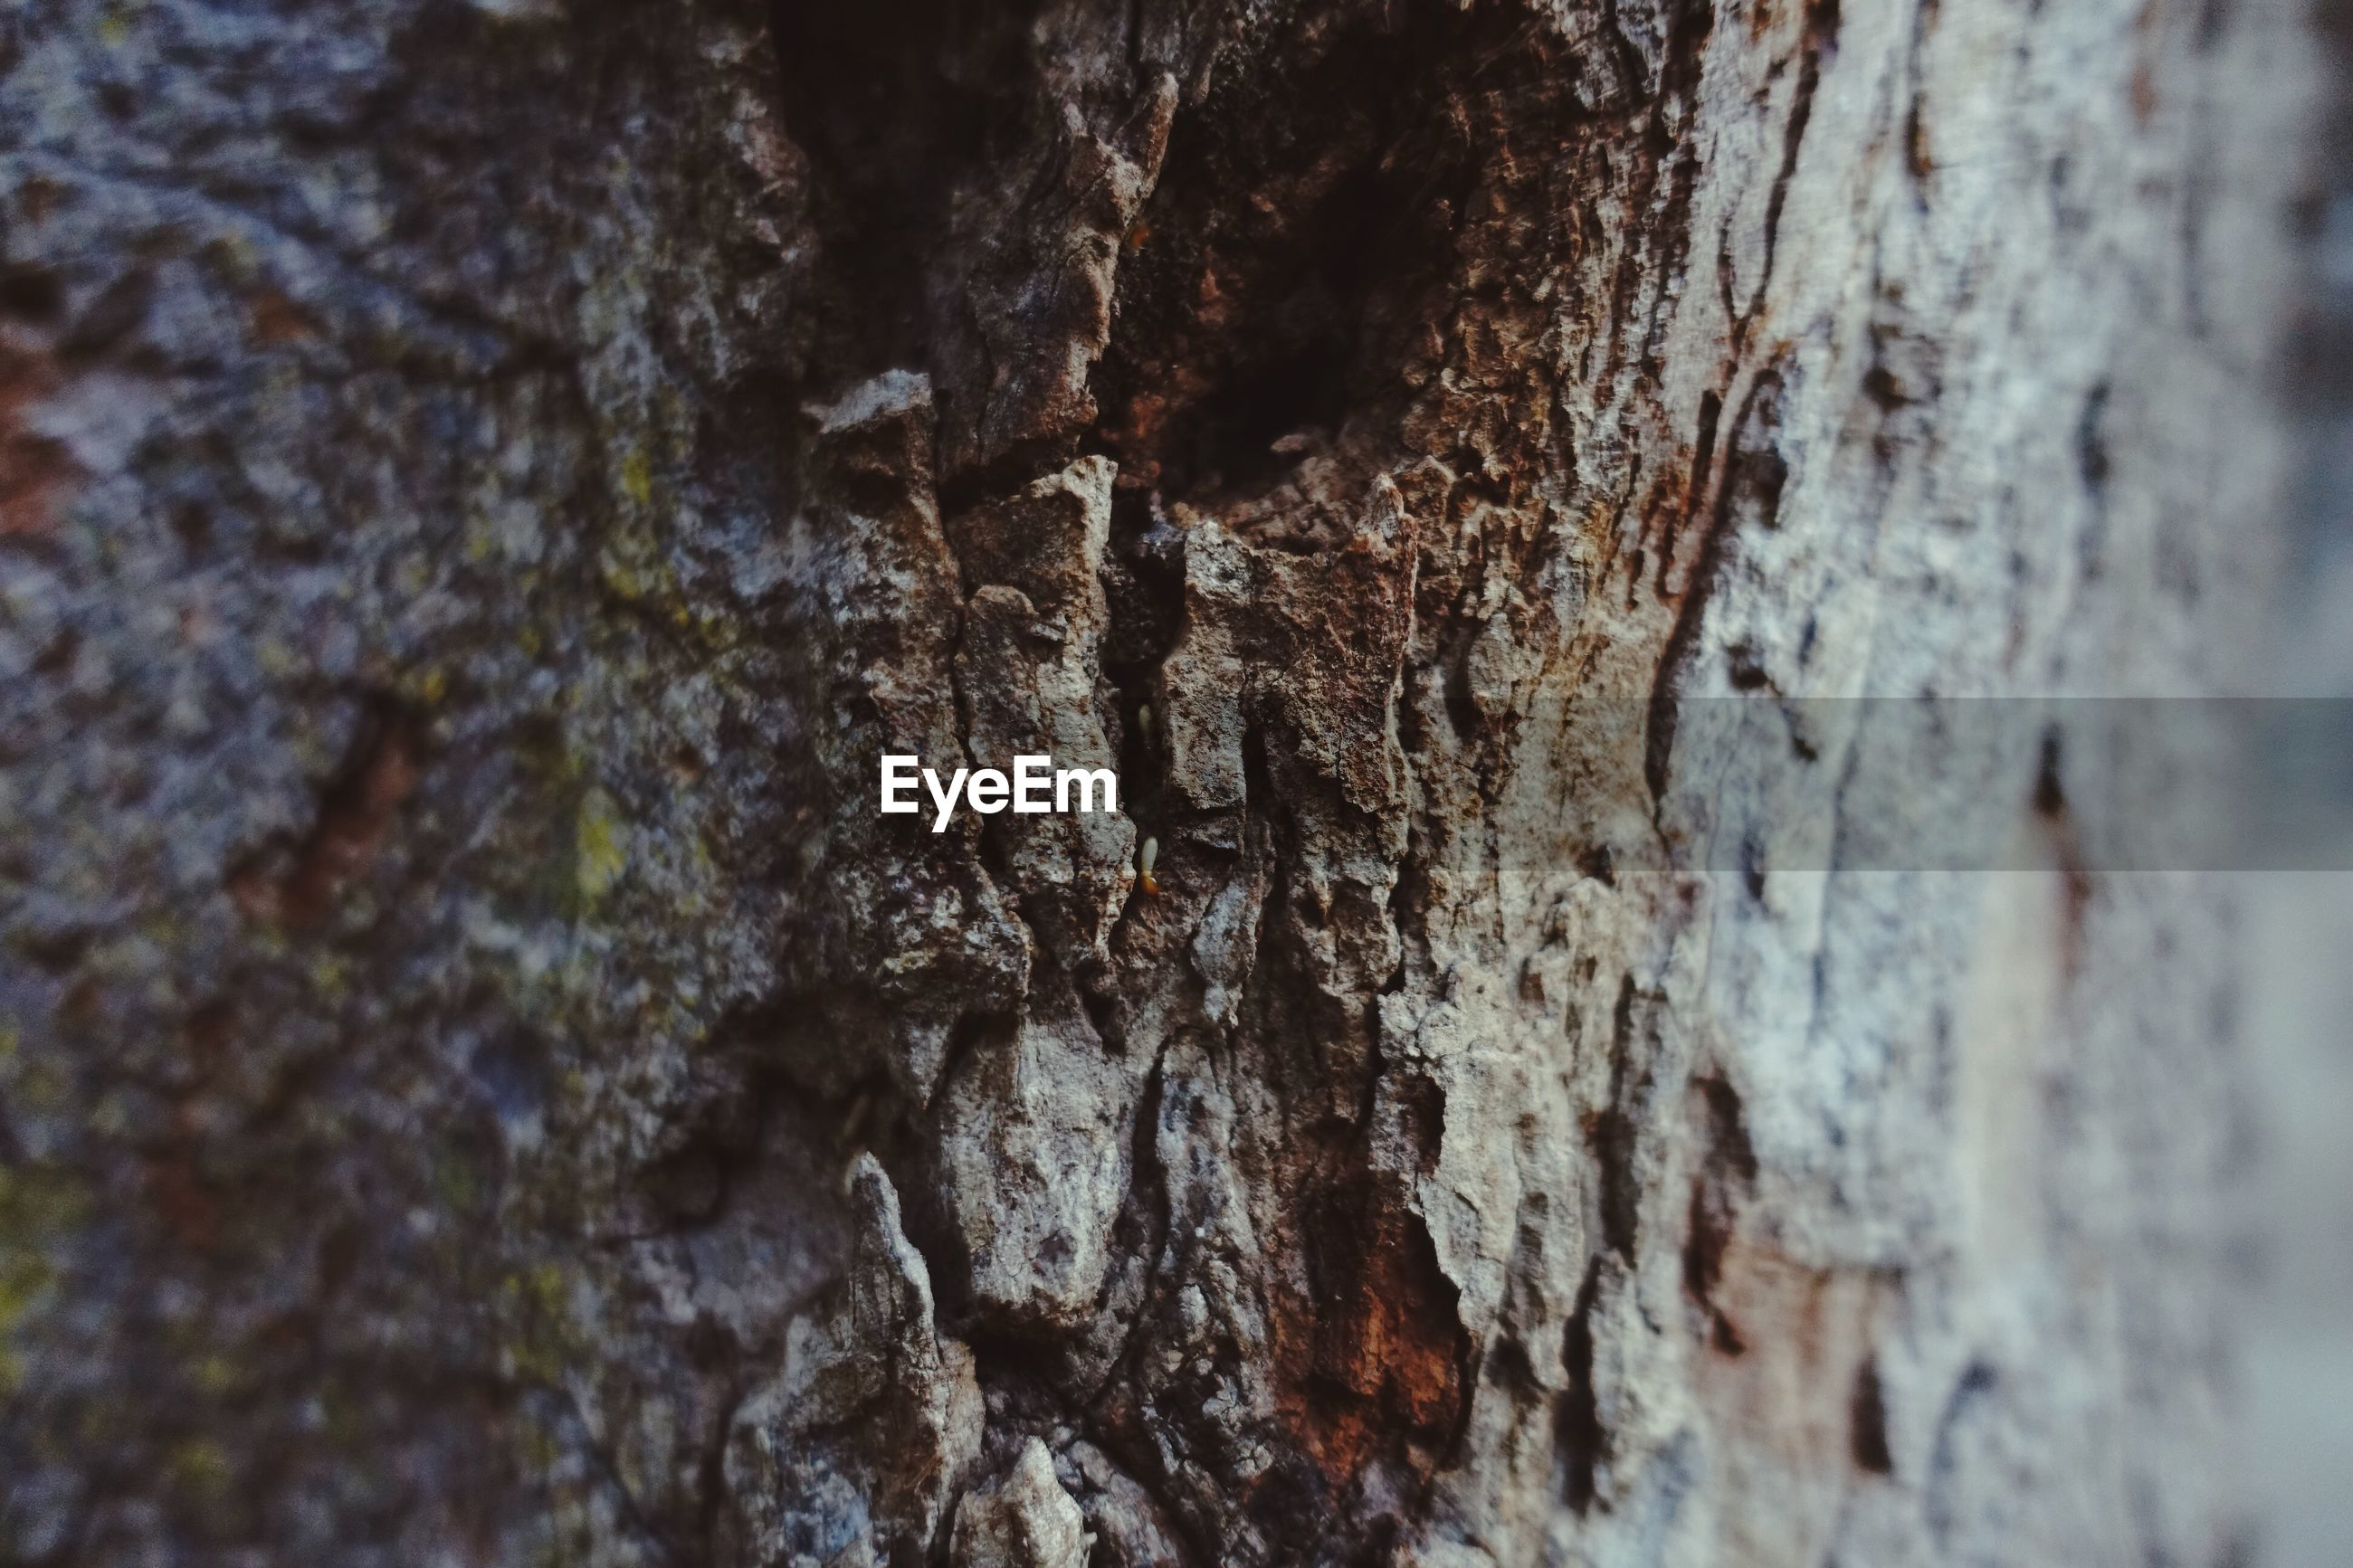 FULL FRAME SHOT OF RUSTY TREE TRUNK